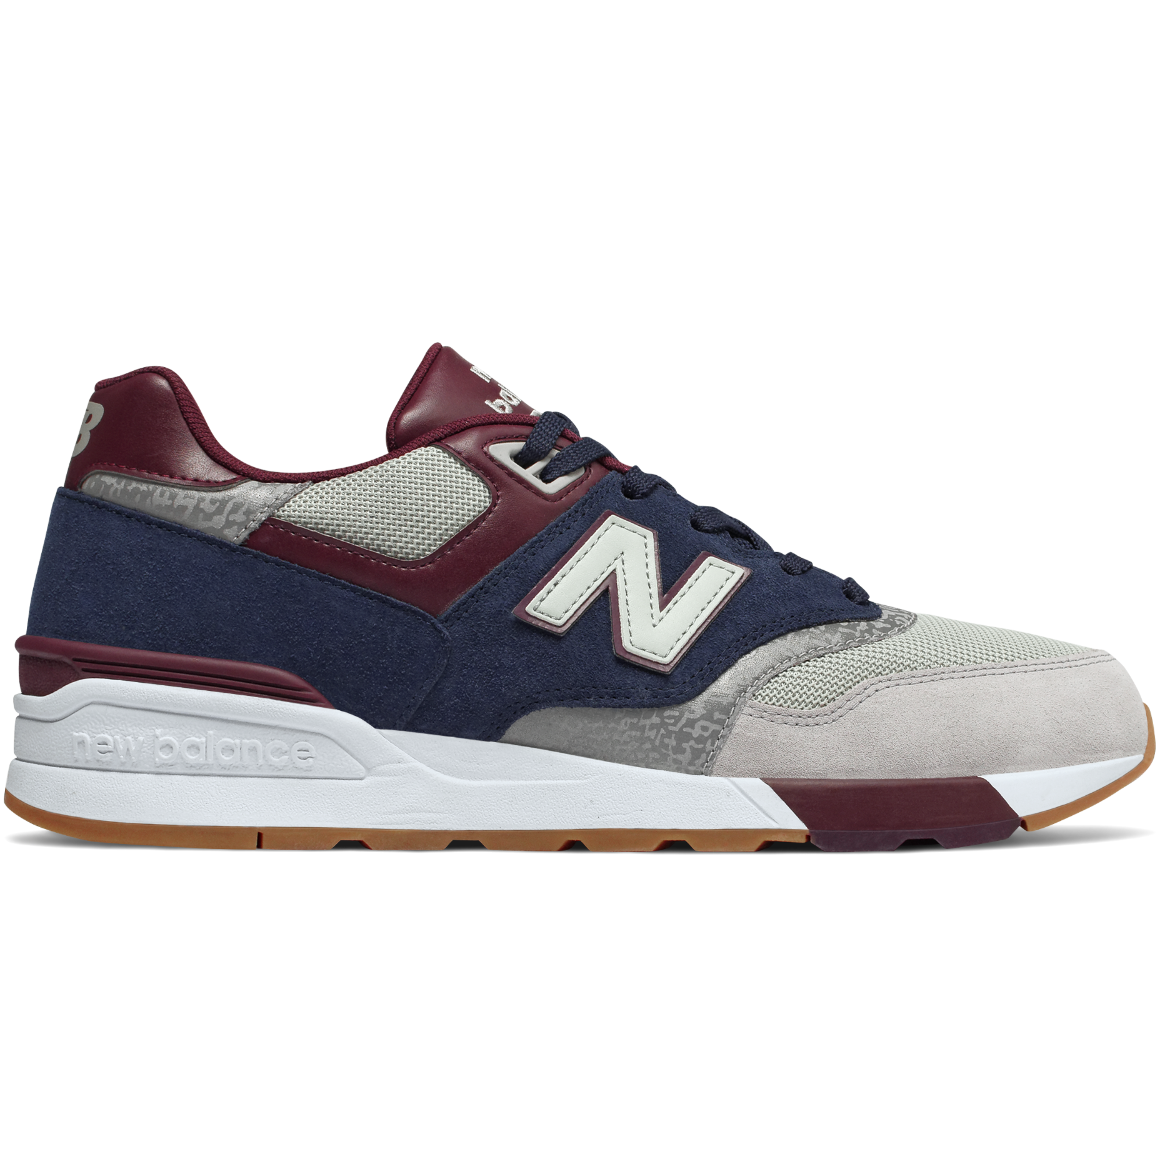 New Balance ML 597 Sneaker